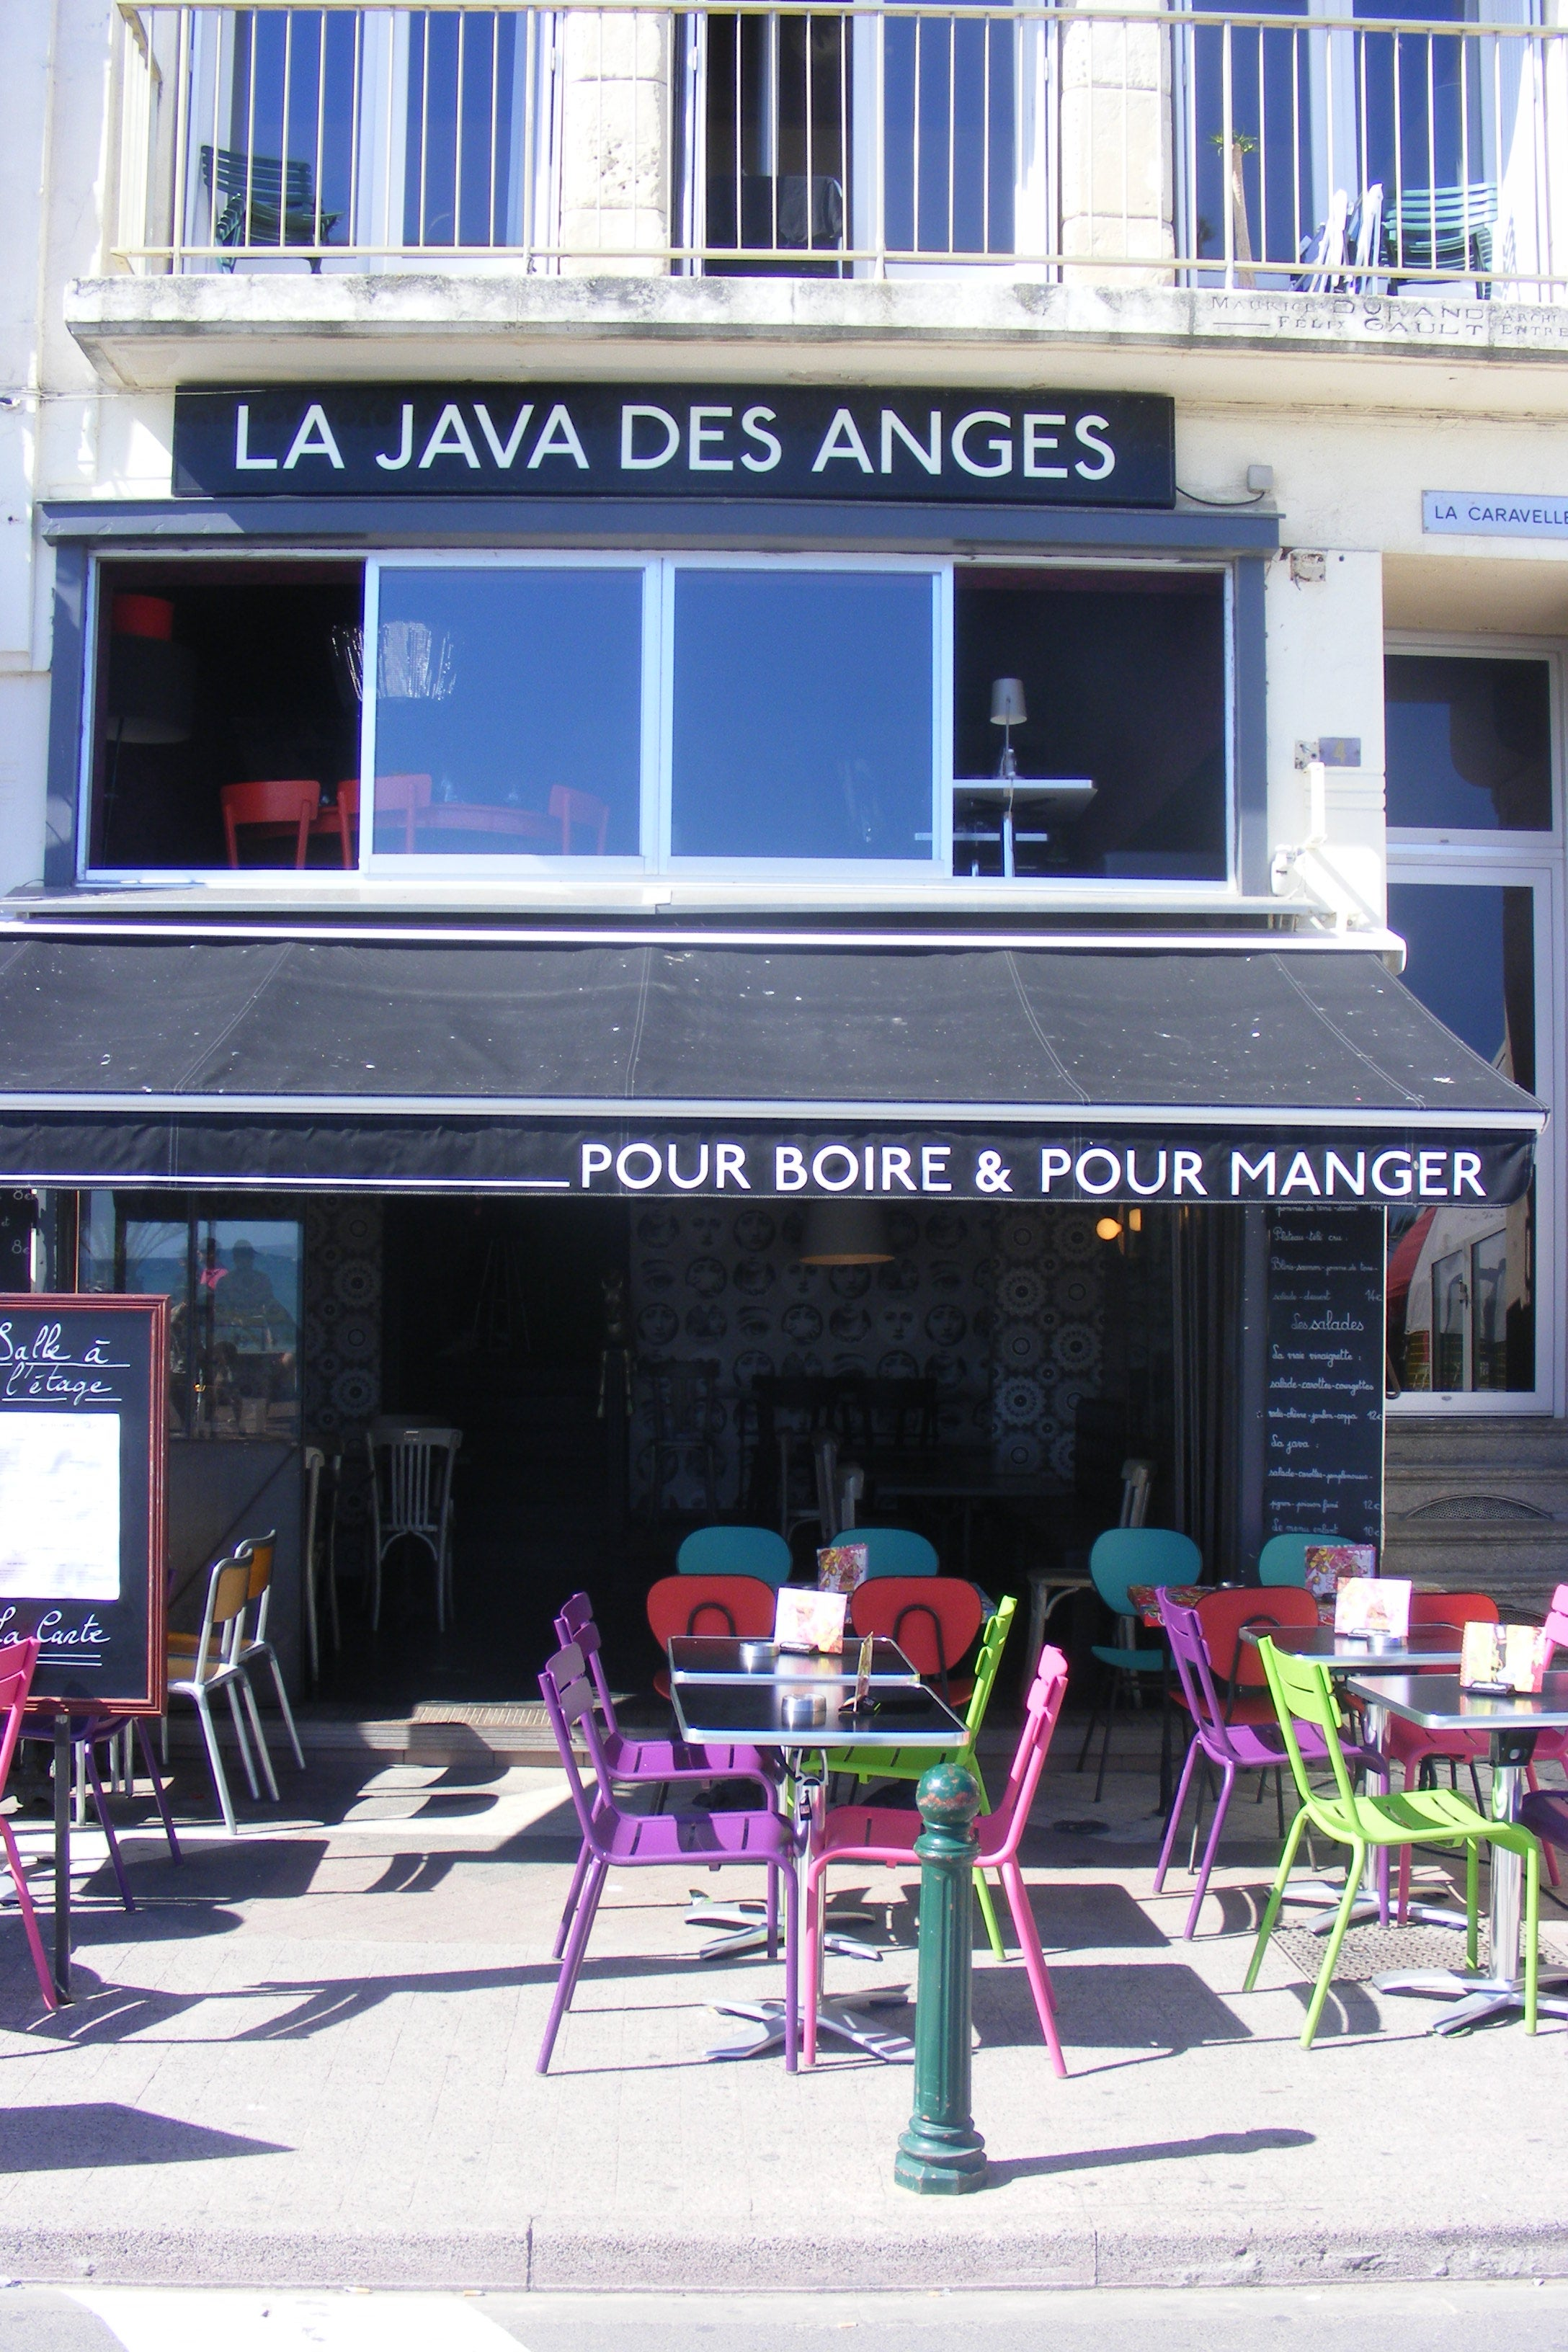 La Java des Anges